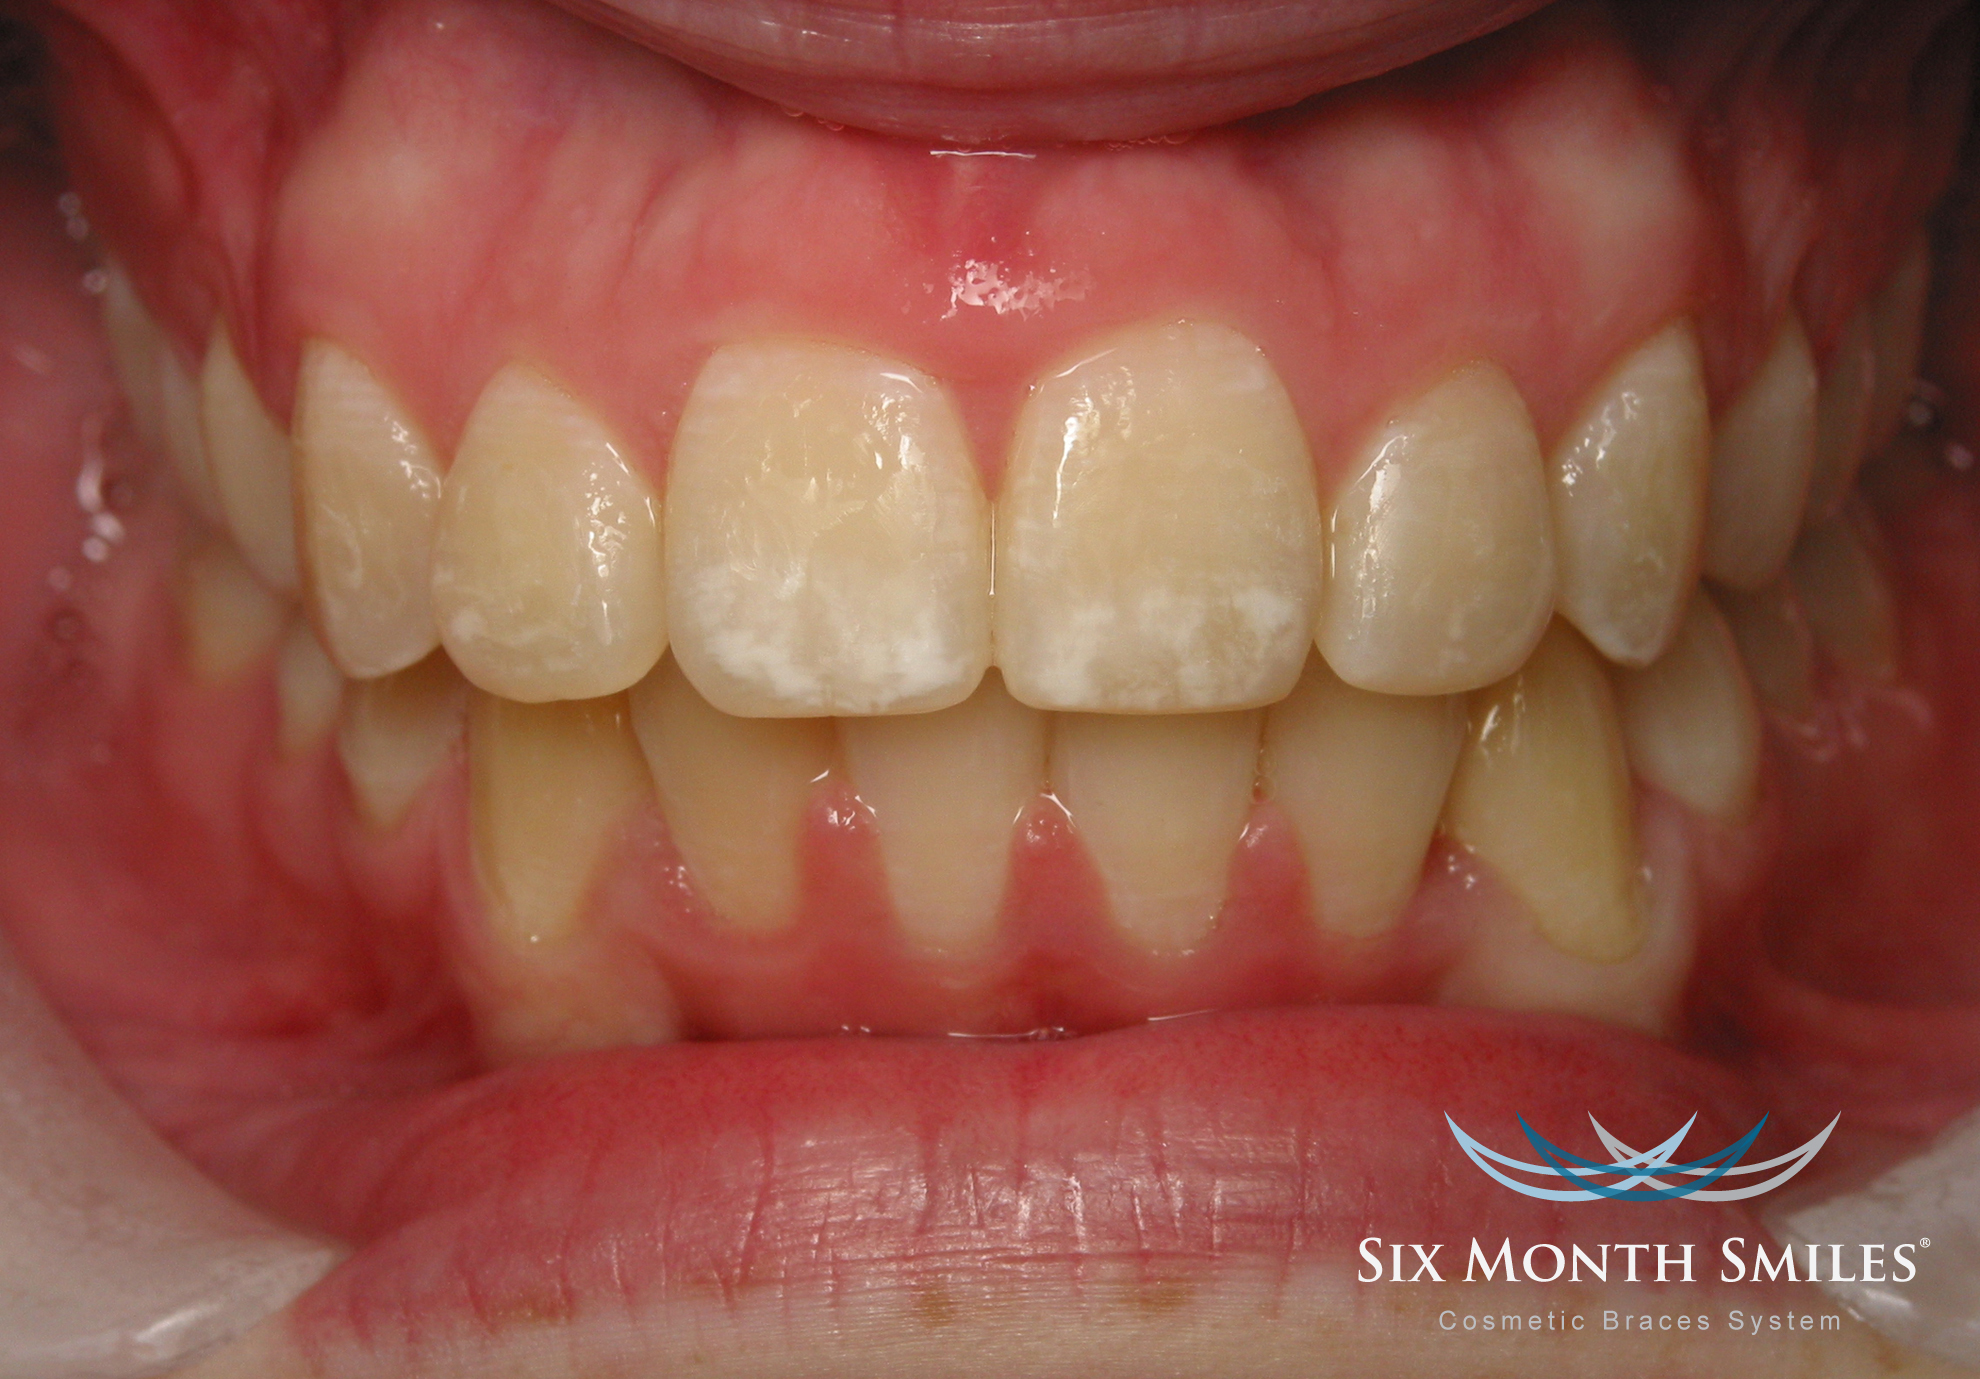 photo of patient teeth after Six Month Smiles